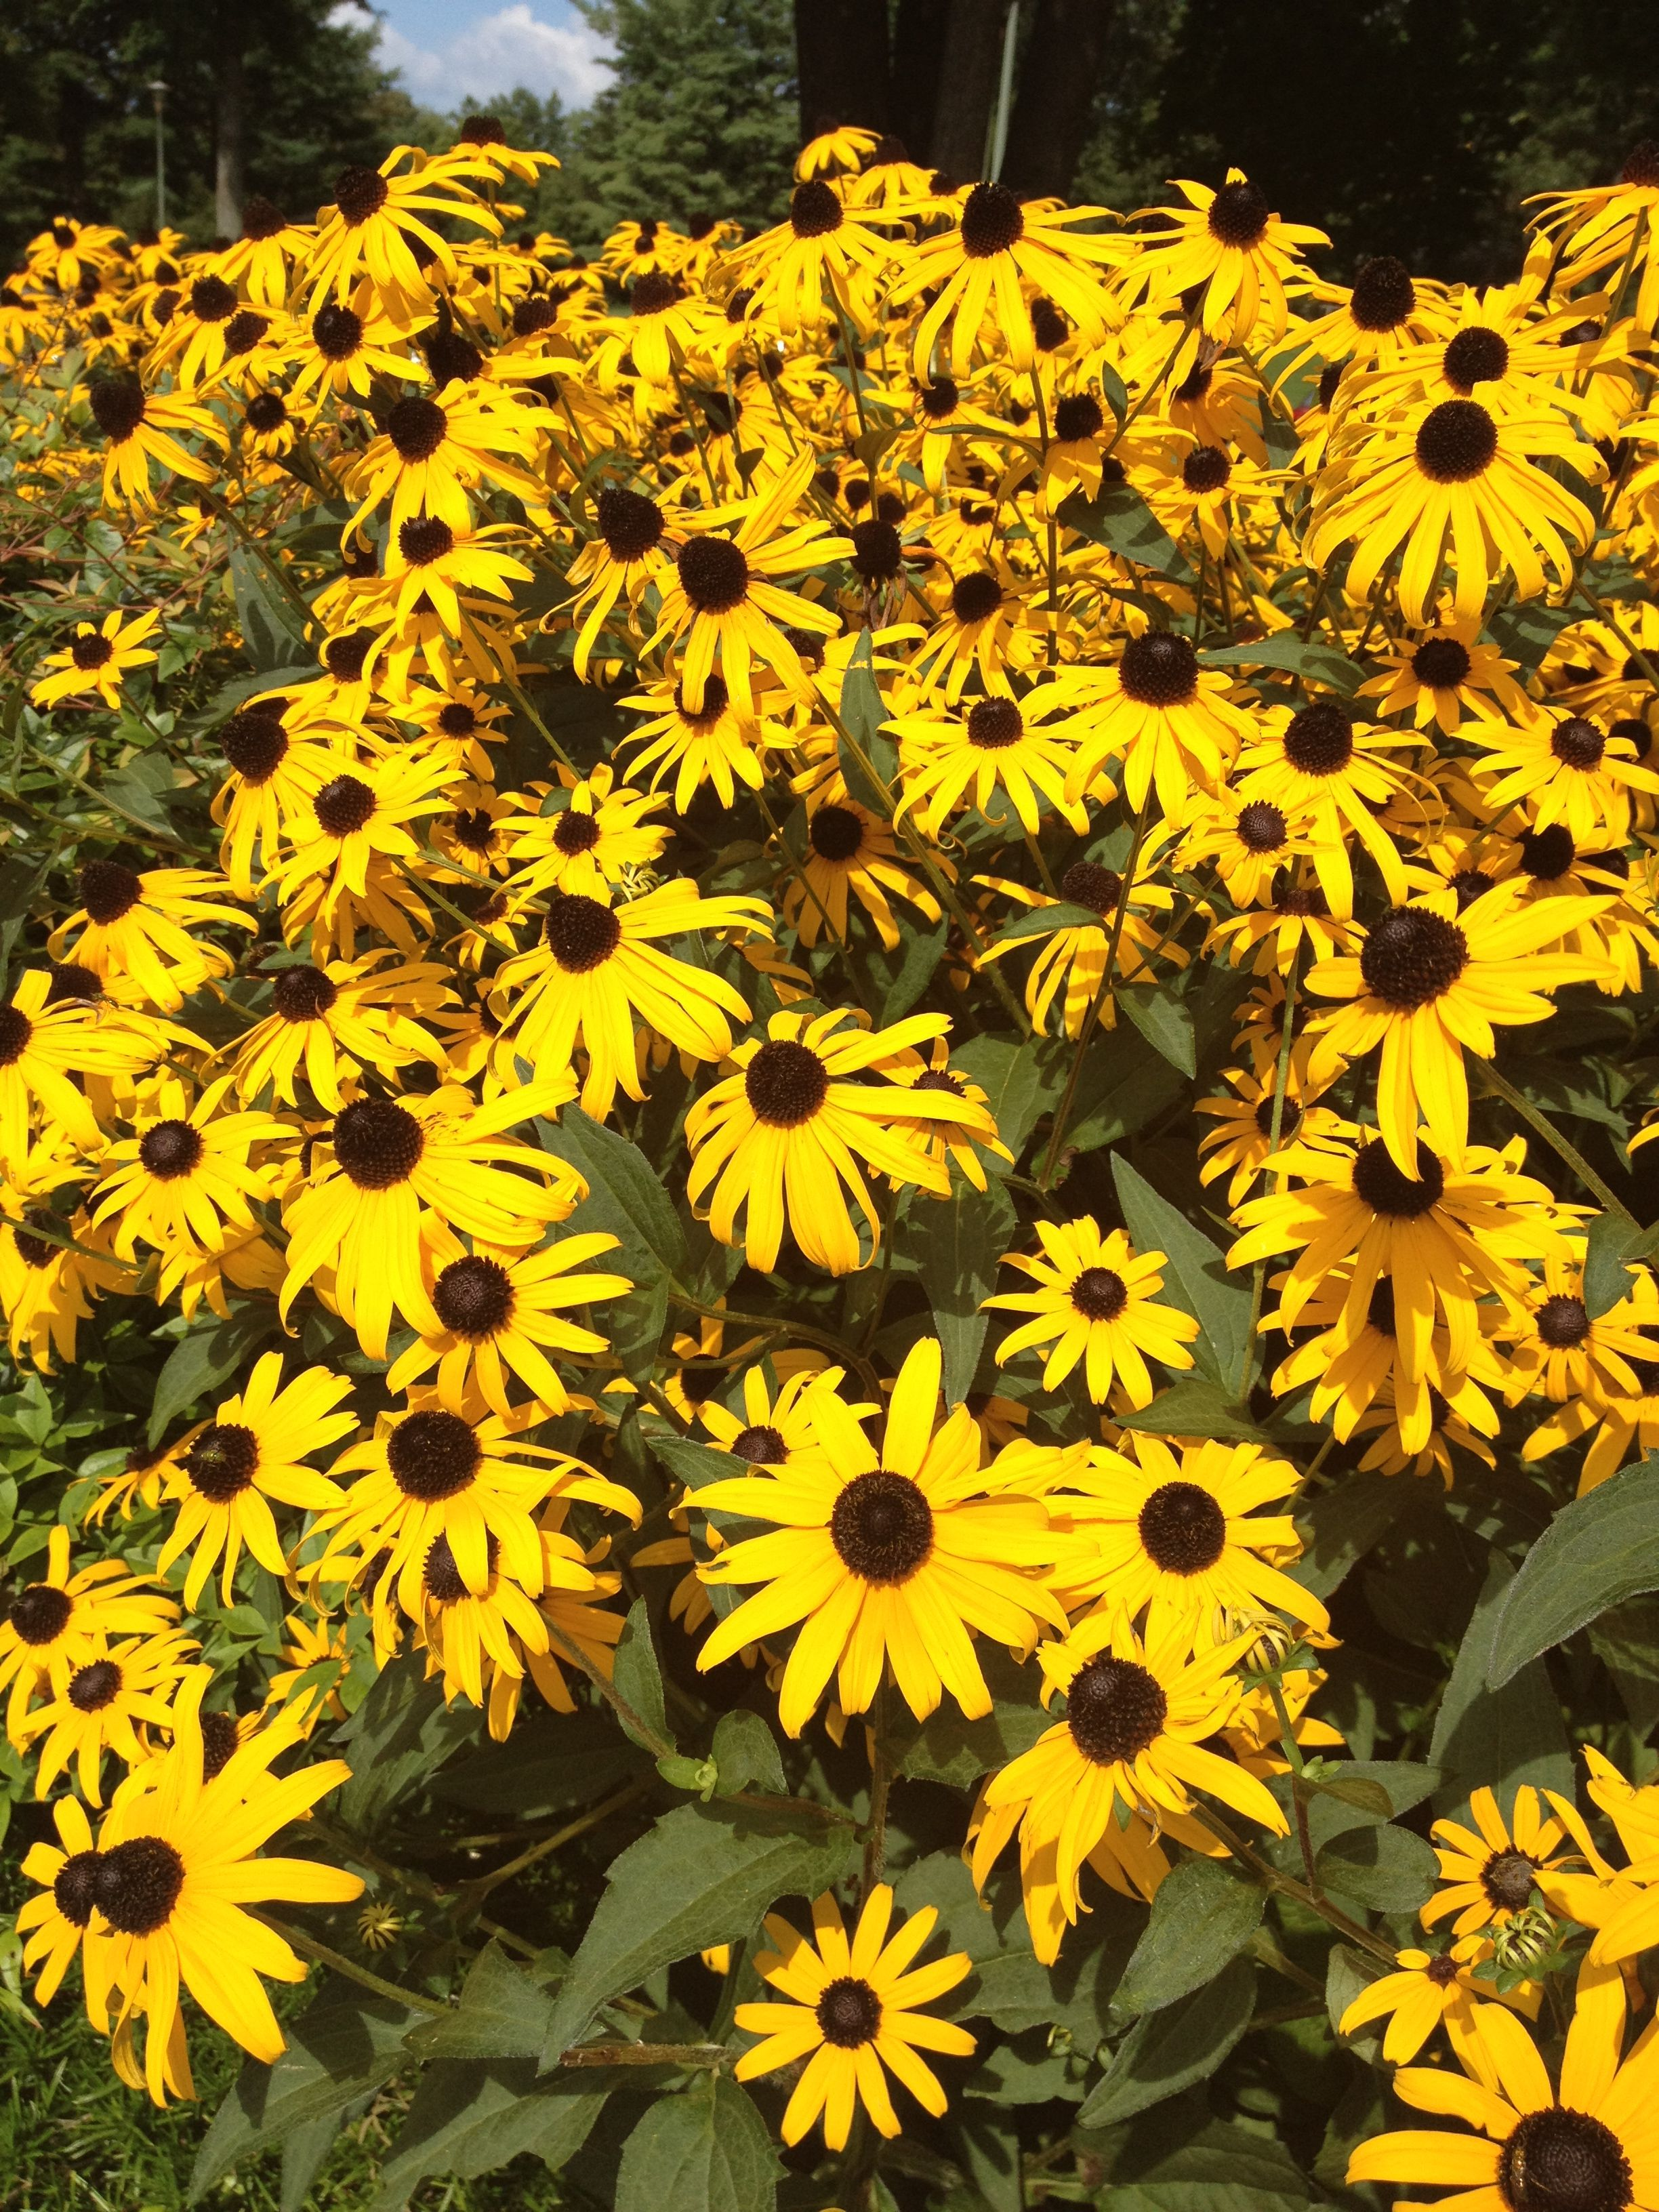 The name Sunflower originates from the Greek word 'helios